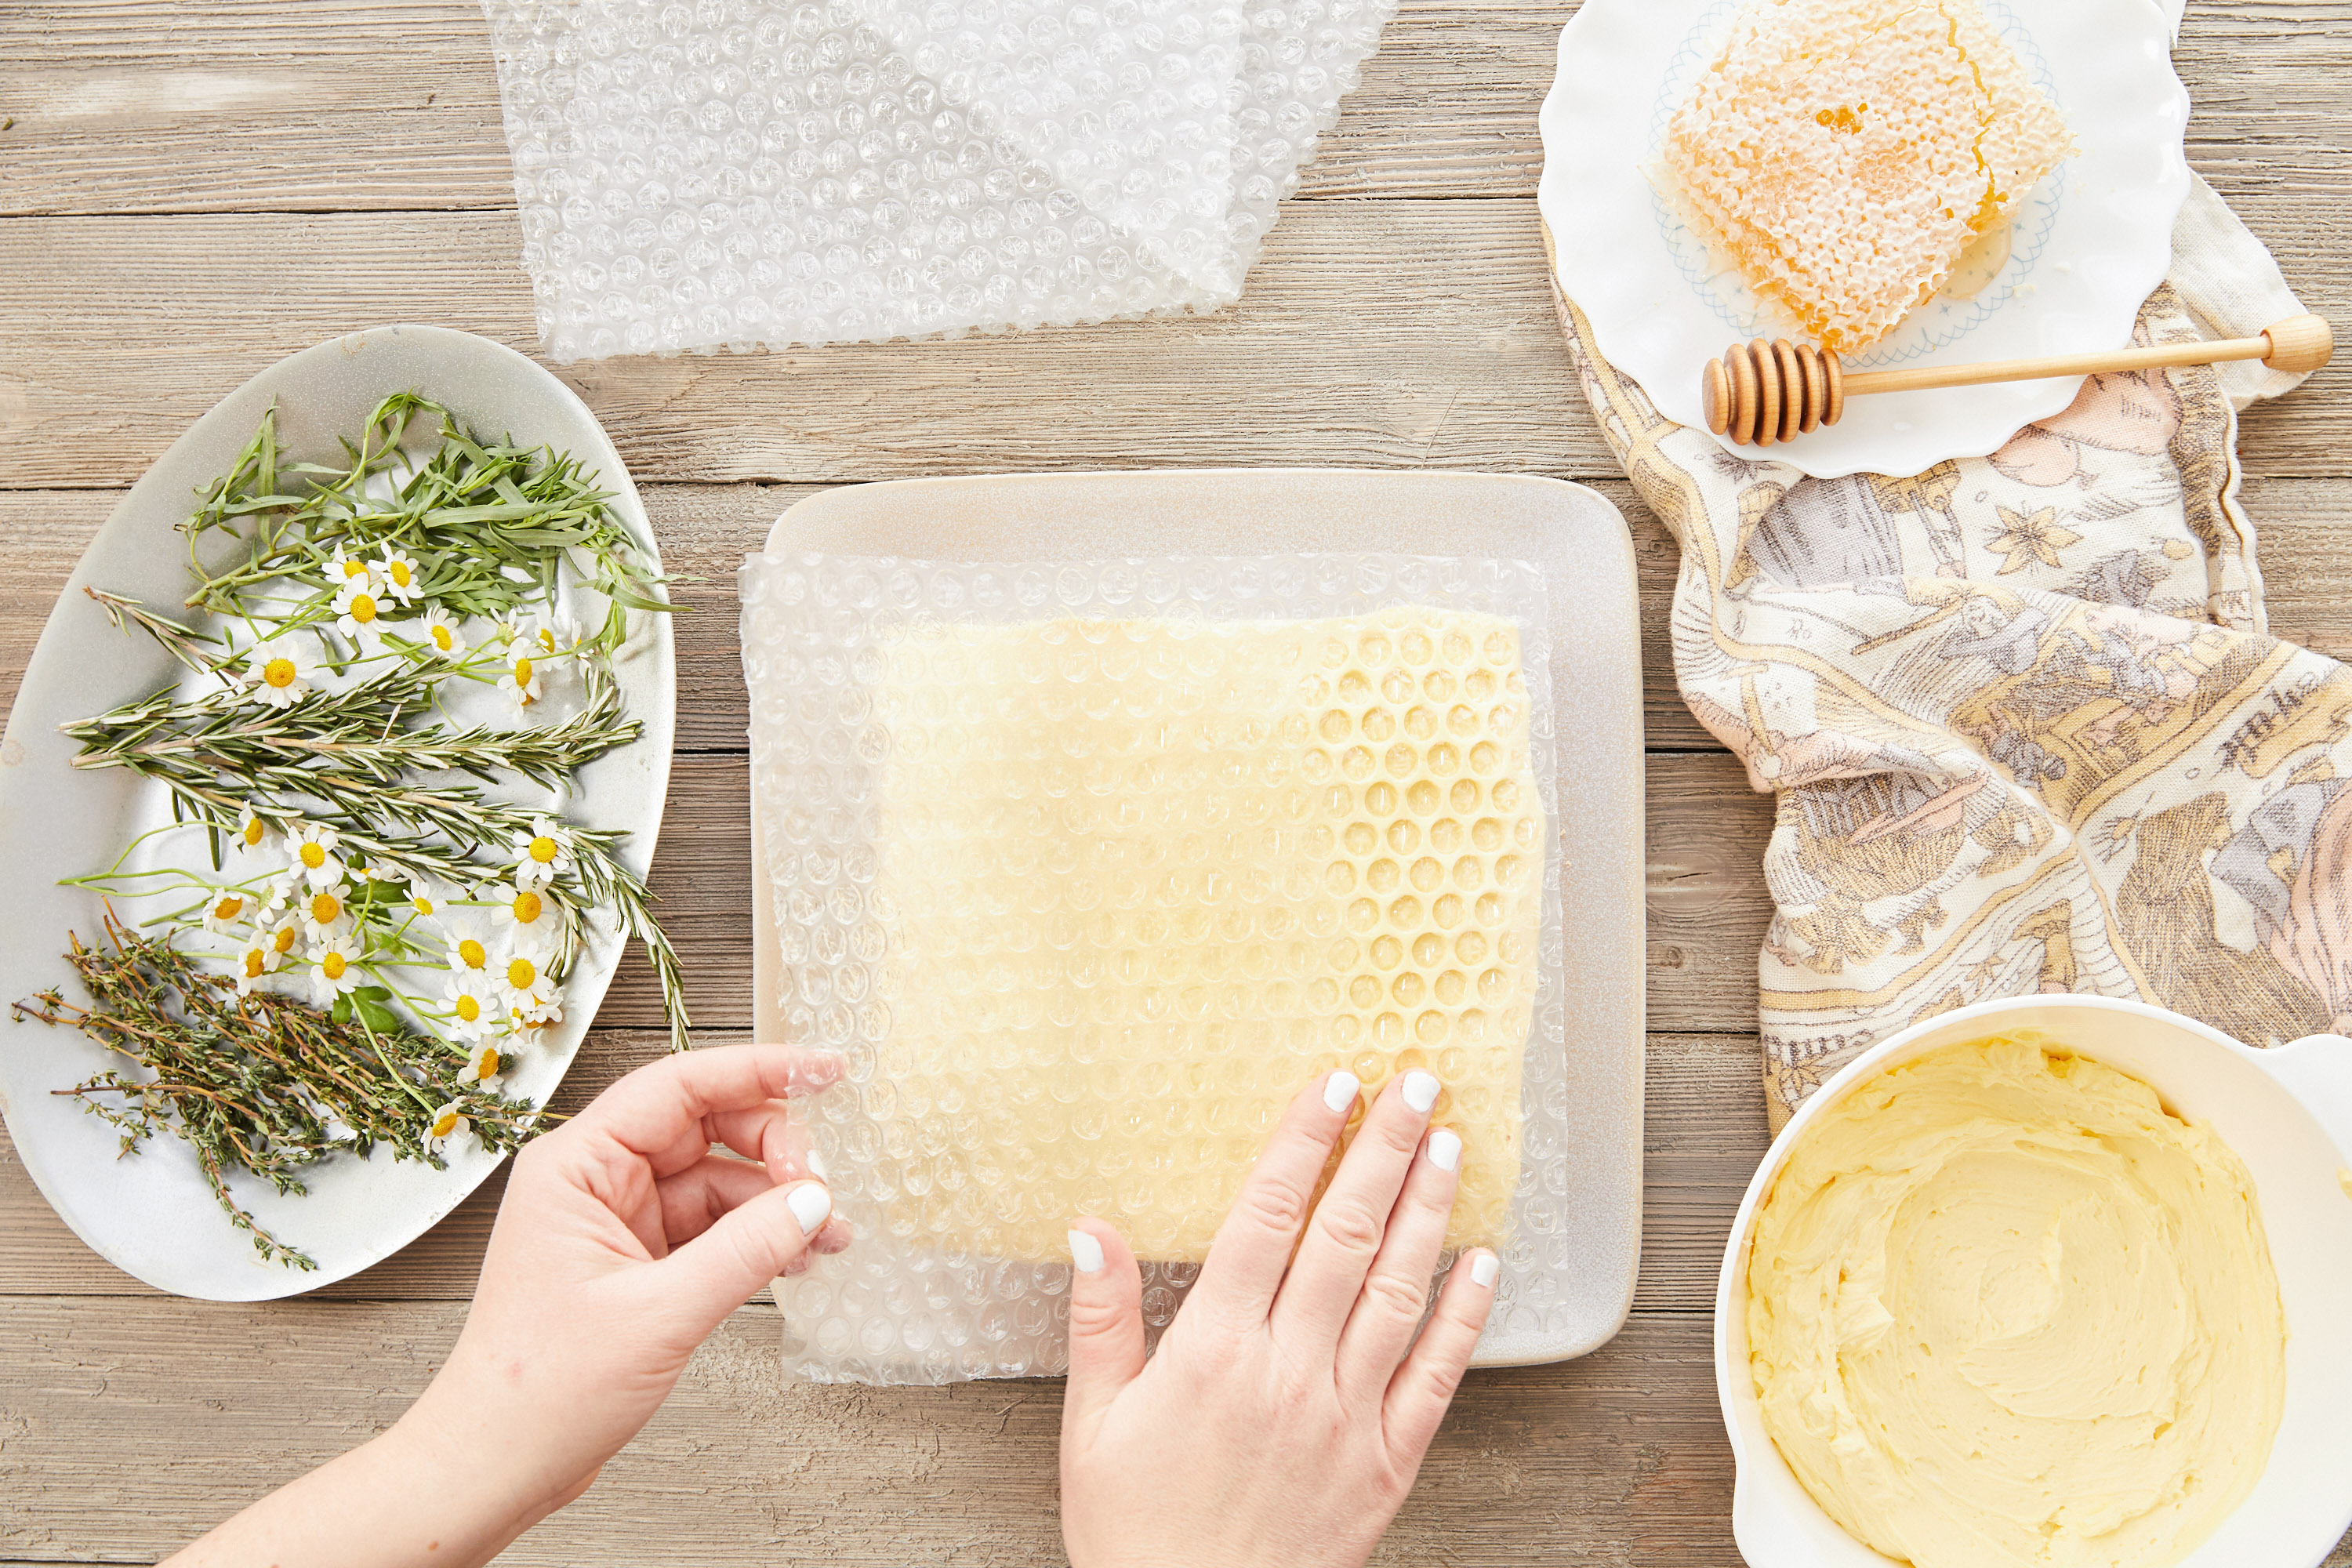 pressing bubble wrap for honeycomb pattern on cake